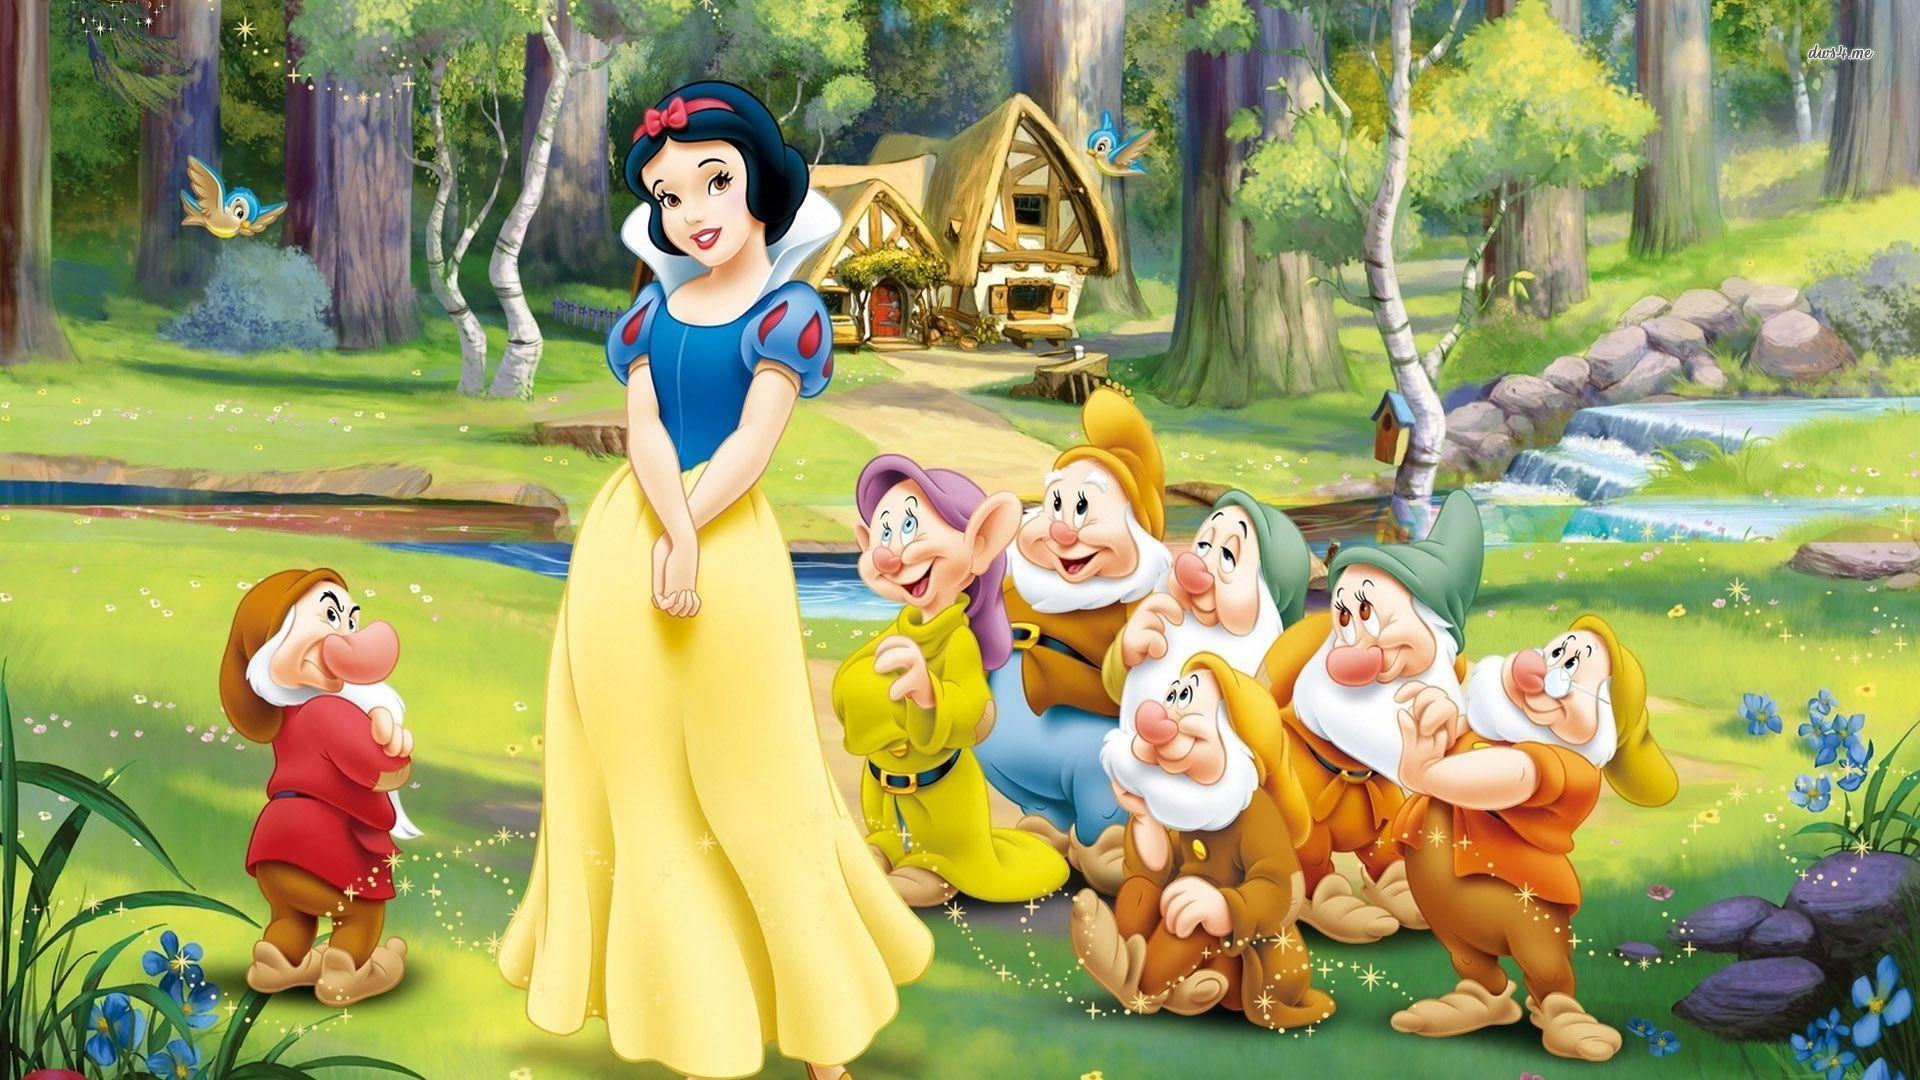 Snow White And The Seven Dwarfs Wallpapers Top Free Snow